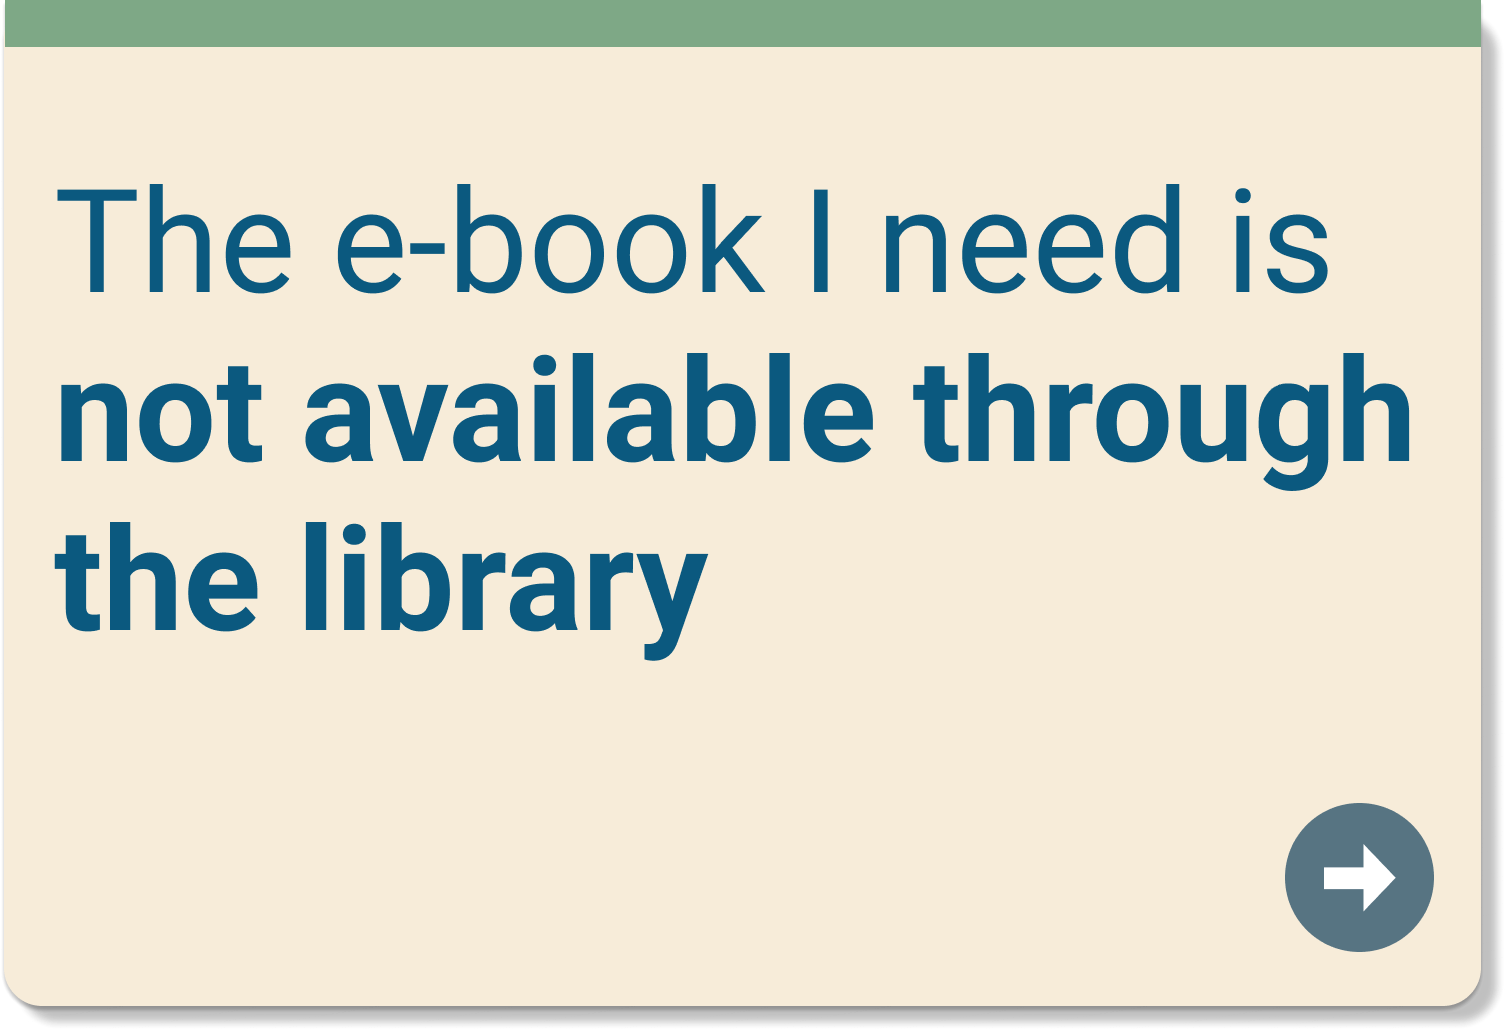 eBook is not available through the library